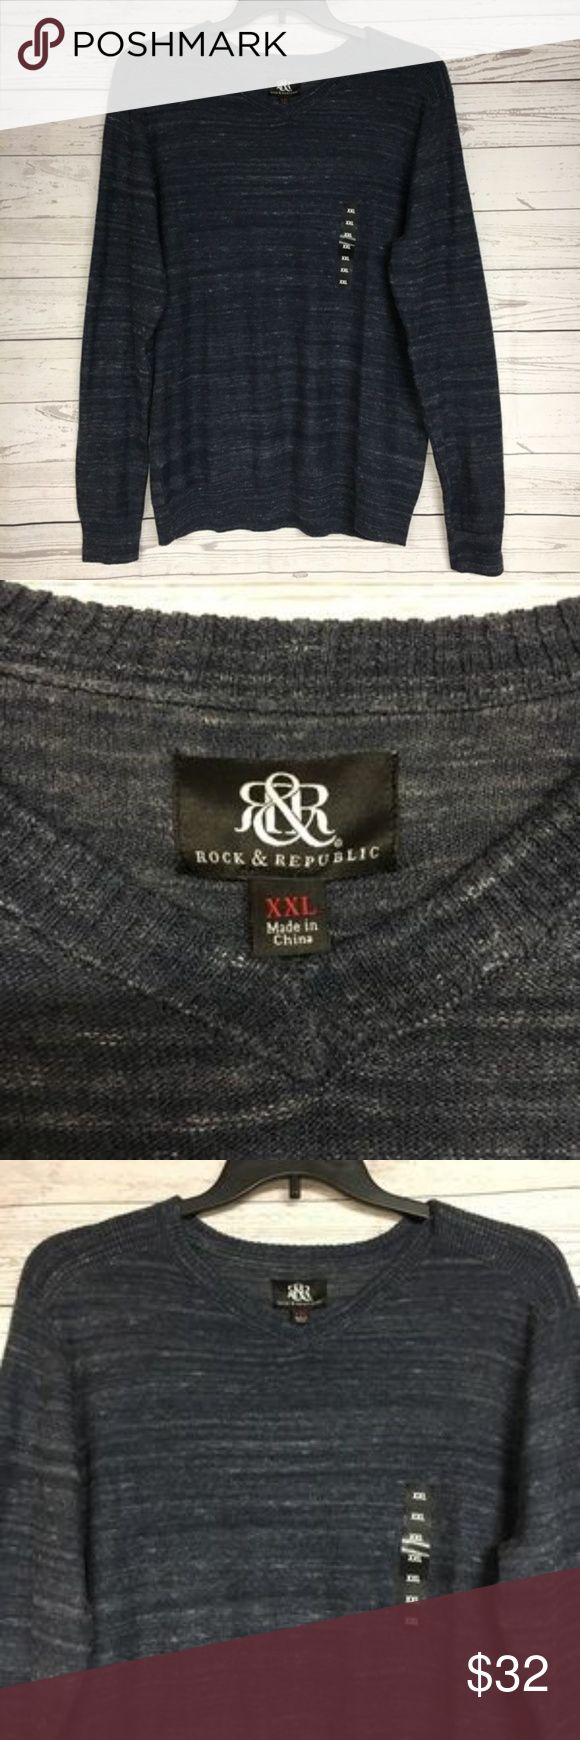 """Rock and Republic Men's V-Neck Sweater Size XXL Rock and Republic Men's V-Neck Sweater Size XXL Blue New NWT  In excellent condition.Please refer to images for more details about this item. If you have any questions please ask. Measurements are taken with the item laying flat.   Armpit to armpit 25"""" Shoulder to hem 29"""" Rock & Republic Sweaters V-Neck"""